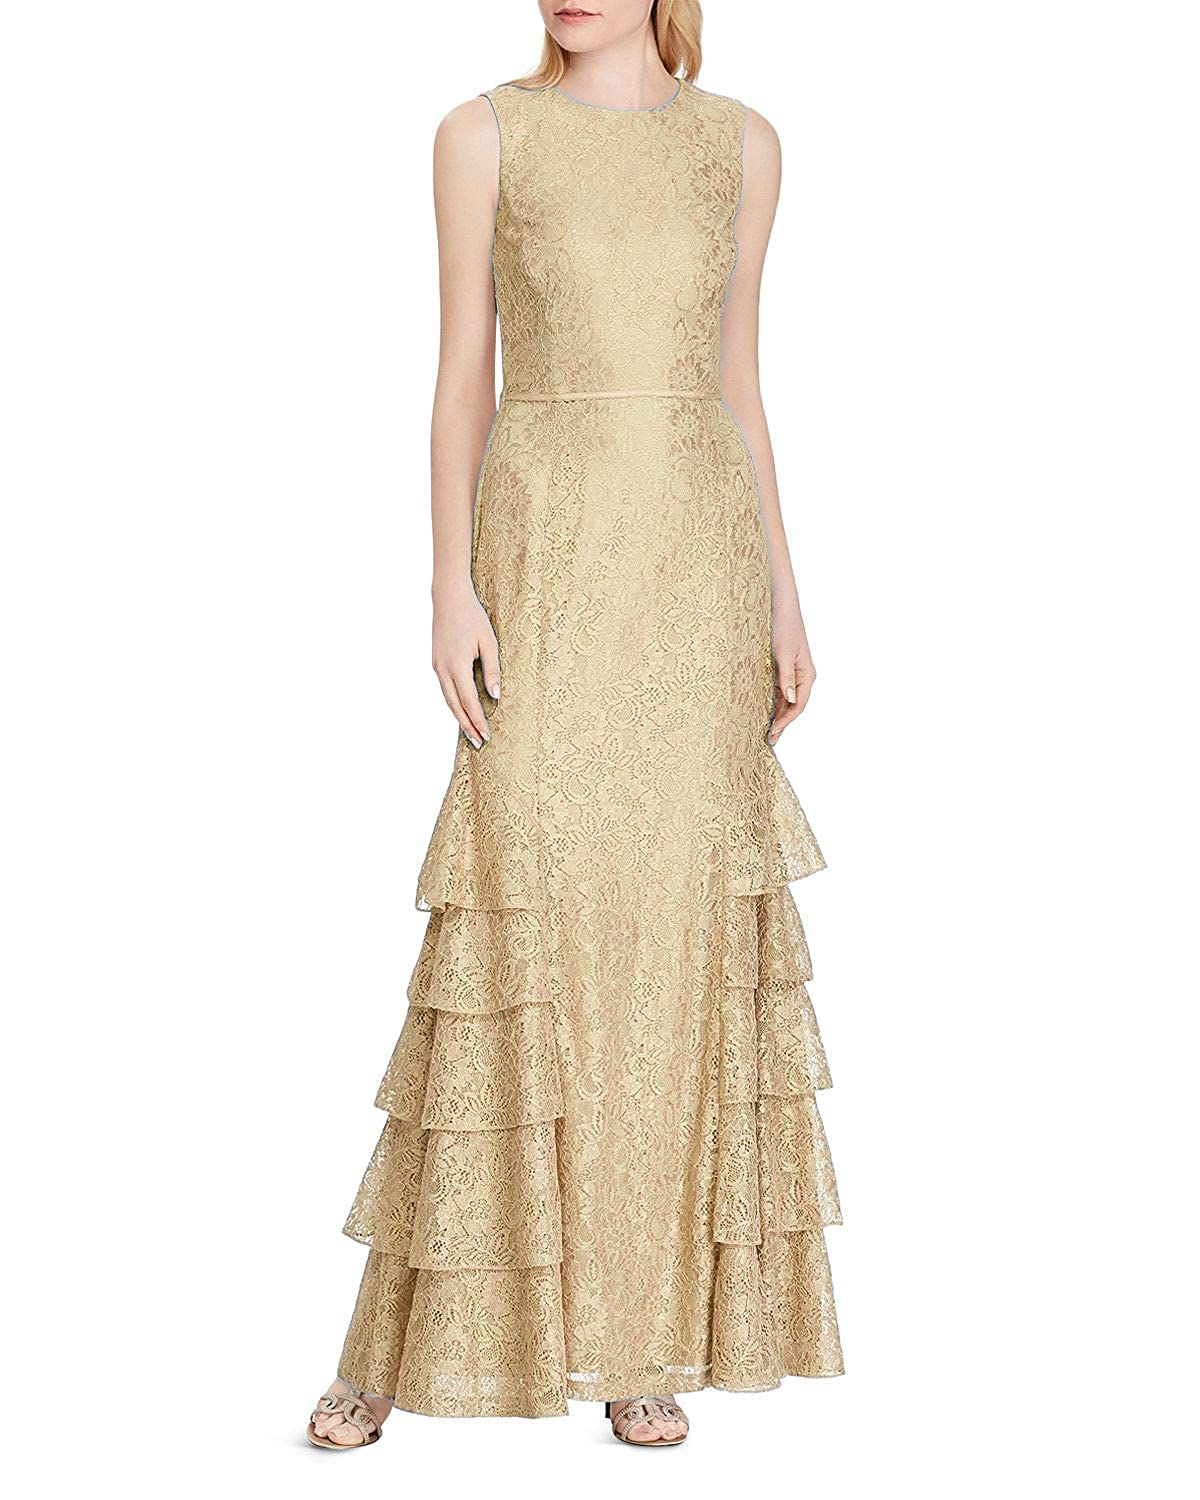 Champagne Wanshaqin Women's Aline Tiered Lace Appliques Evening Gown Wedding Formal Party Dress